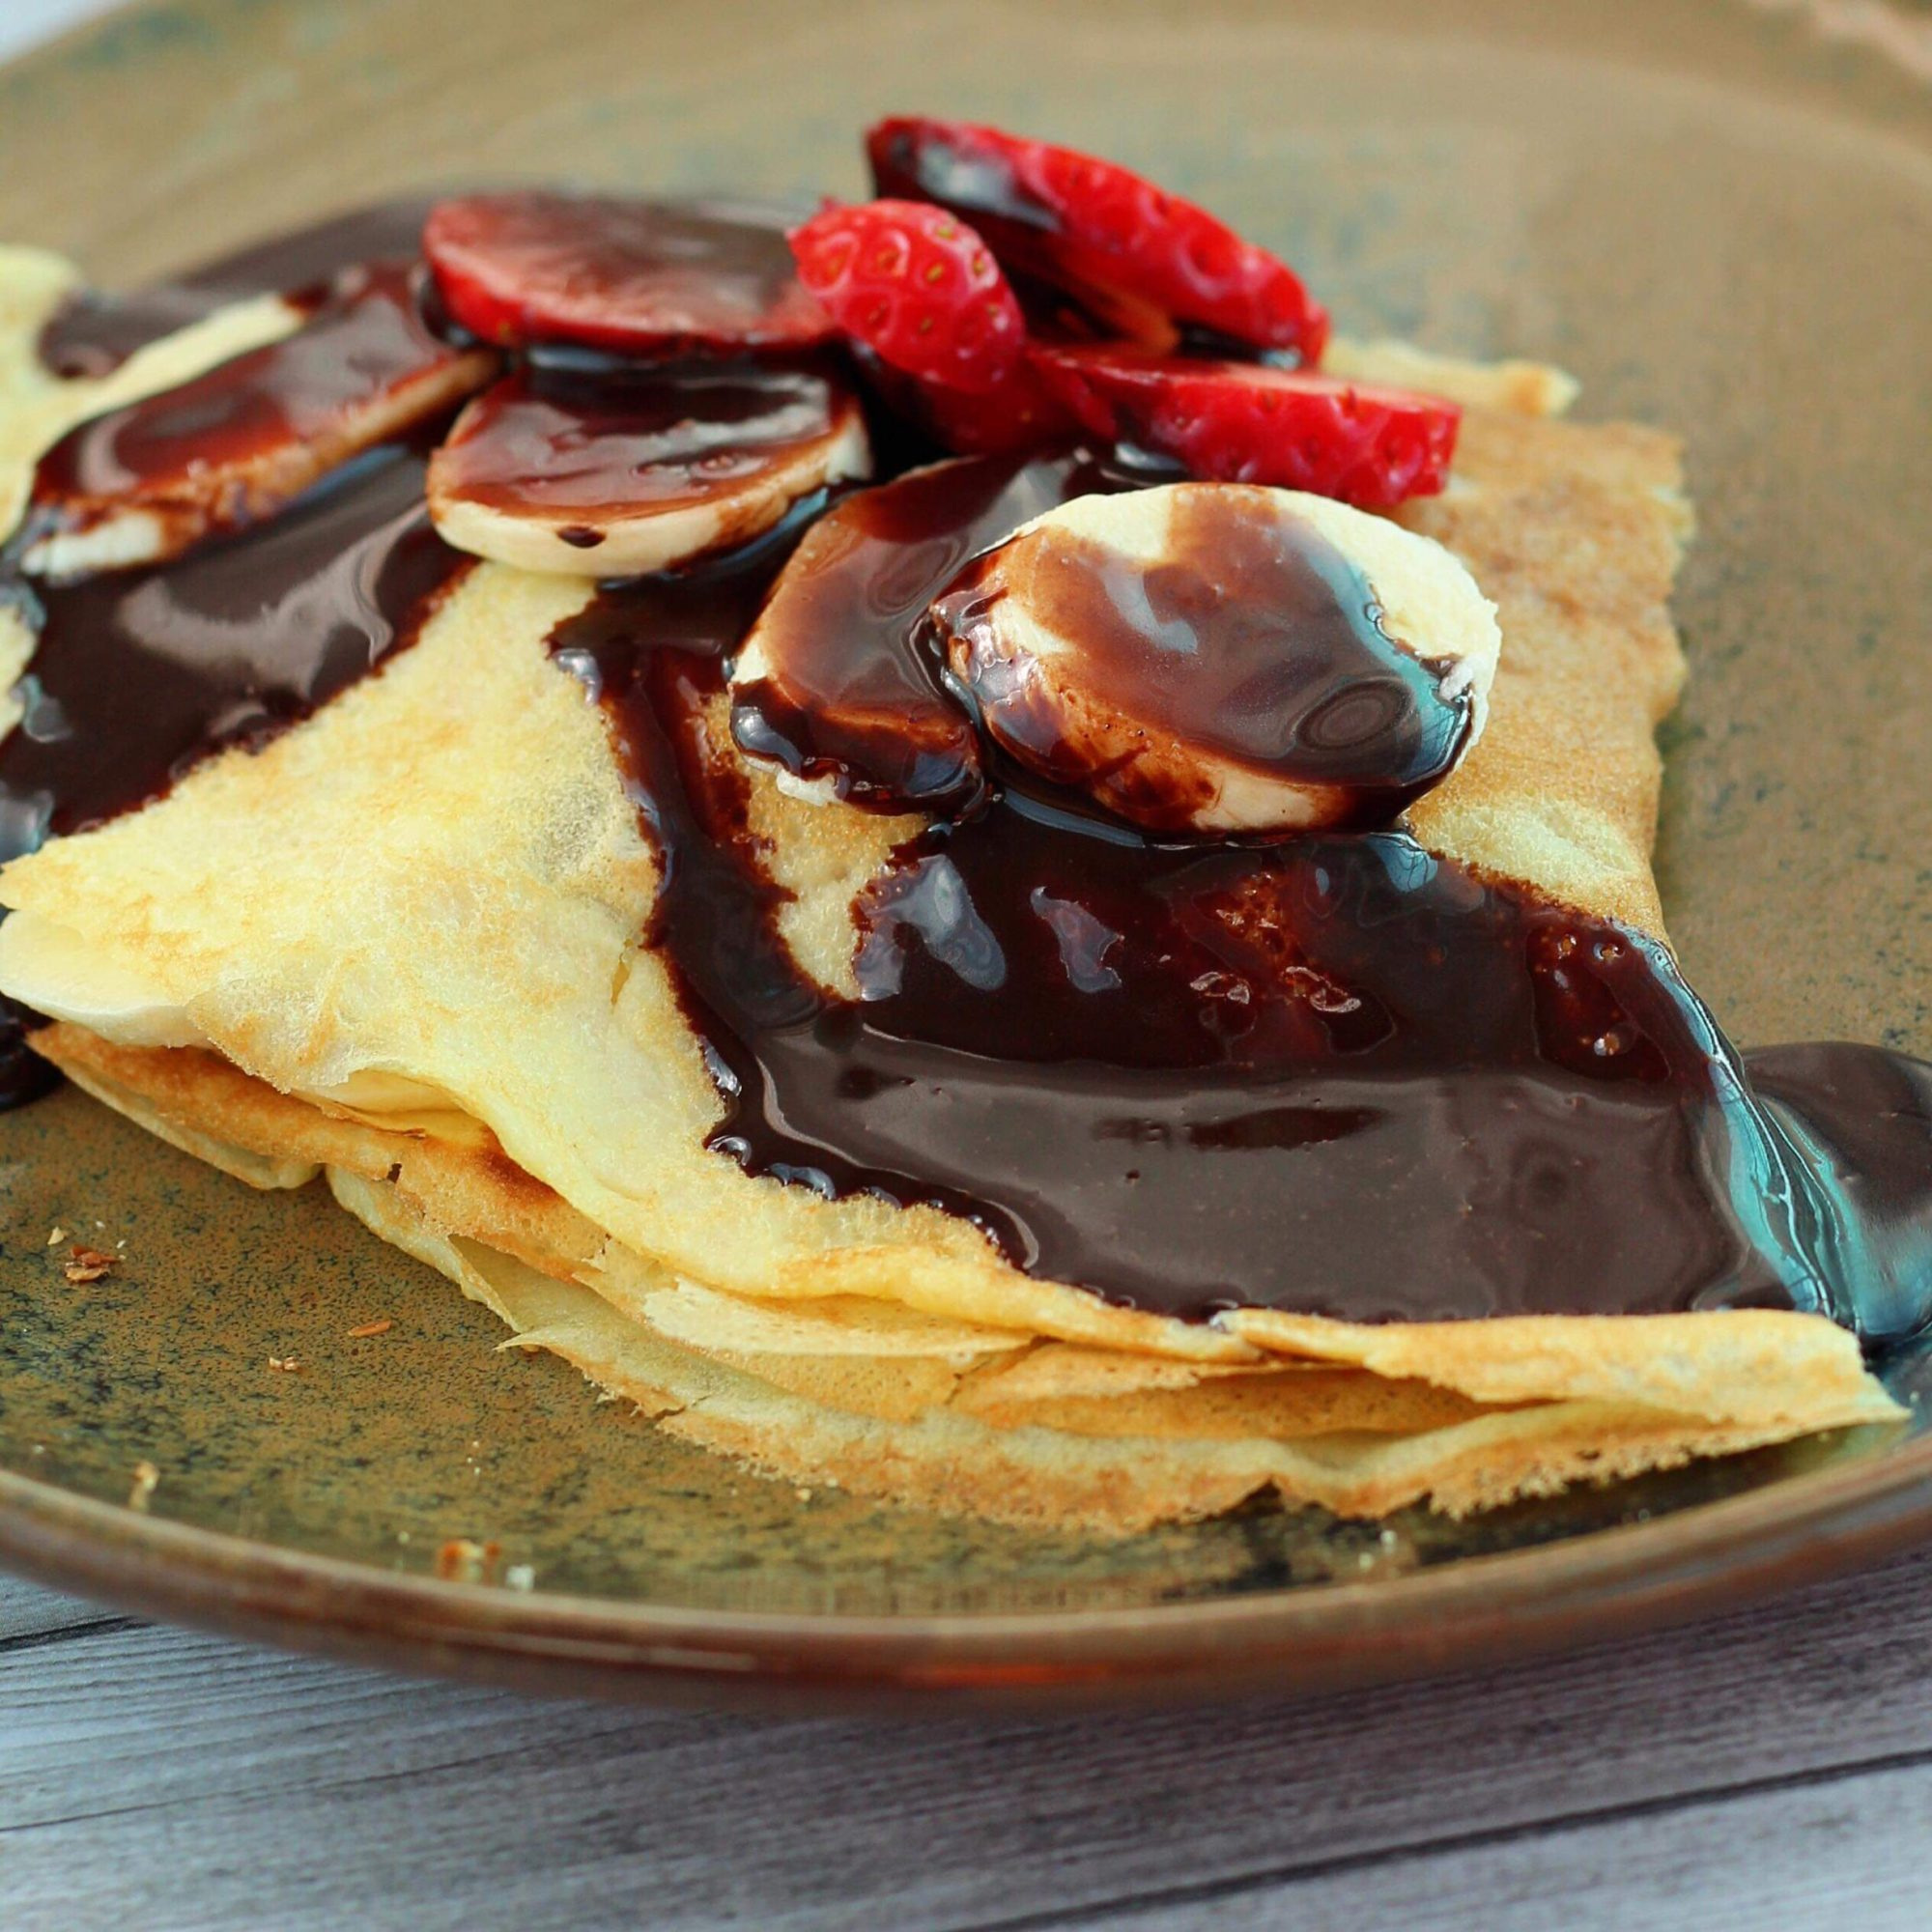 a plate of triangular crepes drizzled with chocolate sauce and topped with strawberry and banana slices